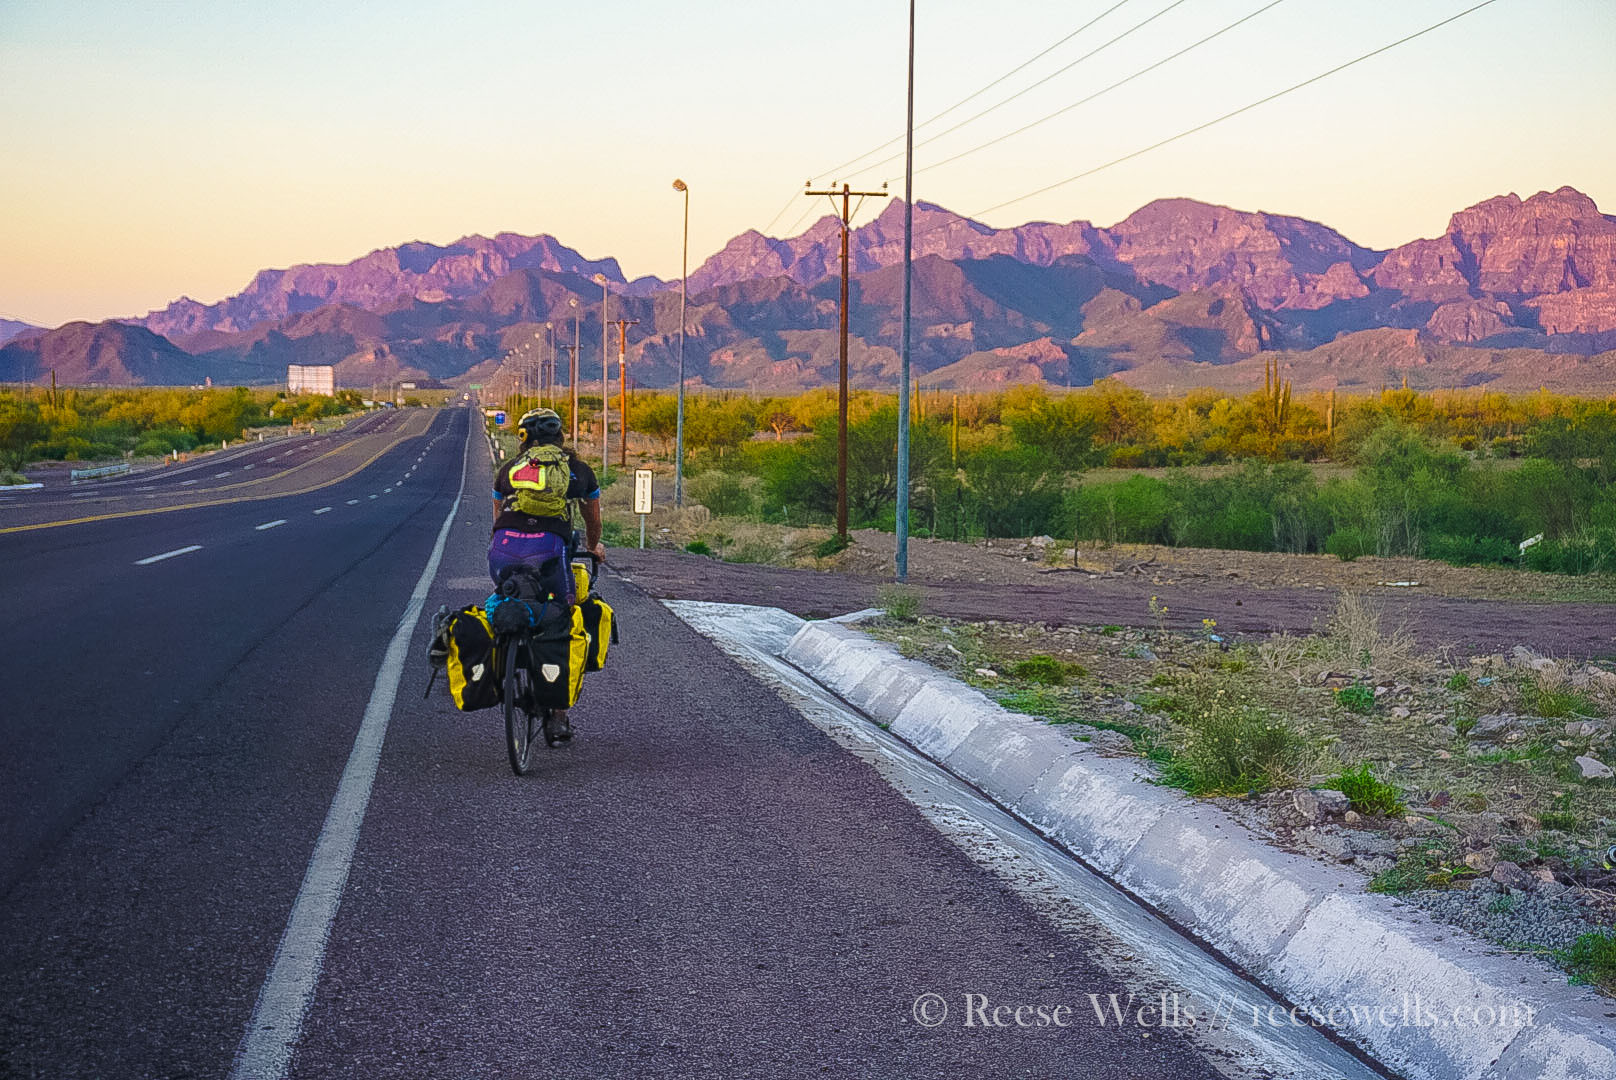 Leaving Loreto to C.C. - you climb up and over those purple puppies. Easier done than it looks. Enjoy!